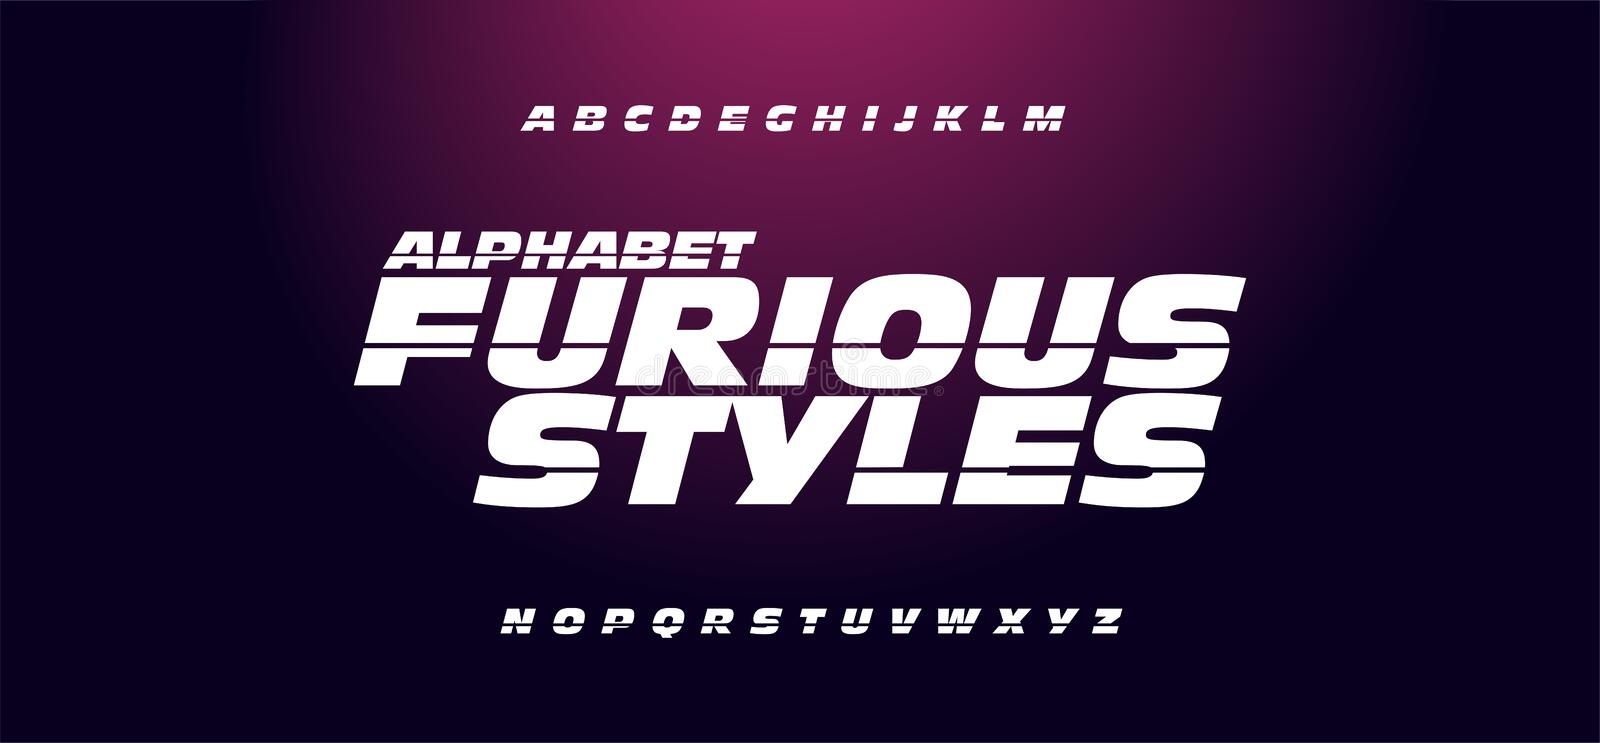 Typography fast and furious style fonts. Typography fast and furious style fonts for movie technology, sport, motorcycle, racing logo design. Sport Modern vector illustration